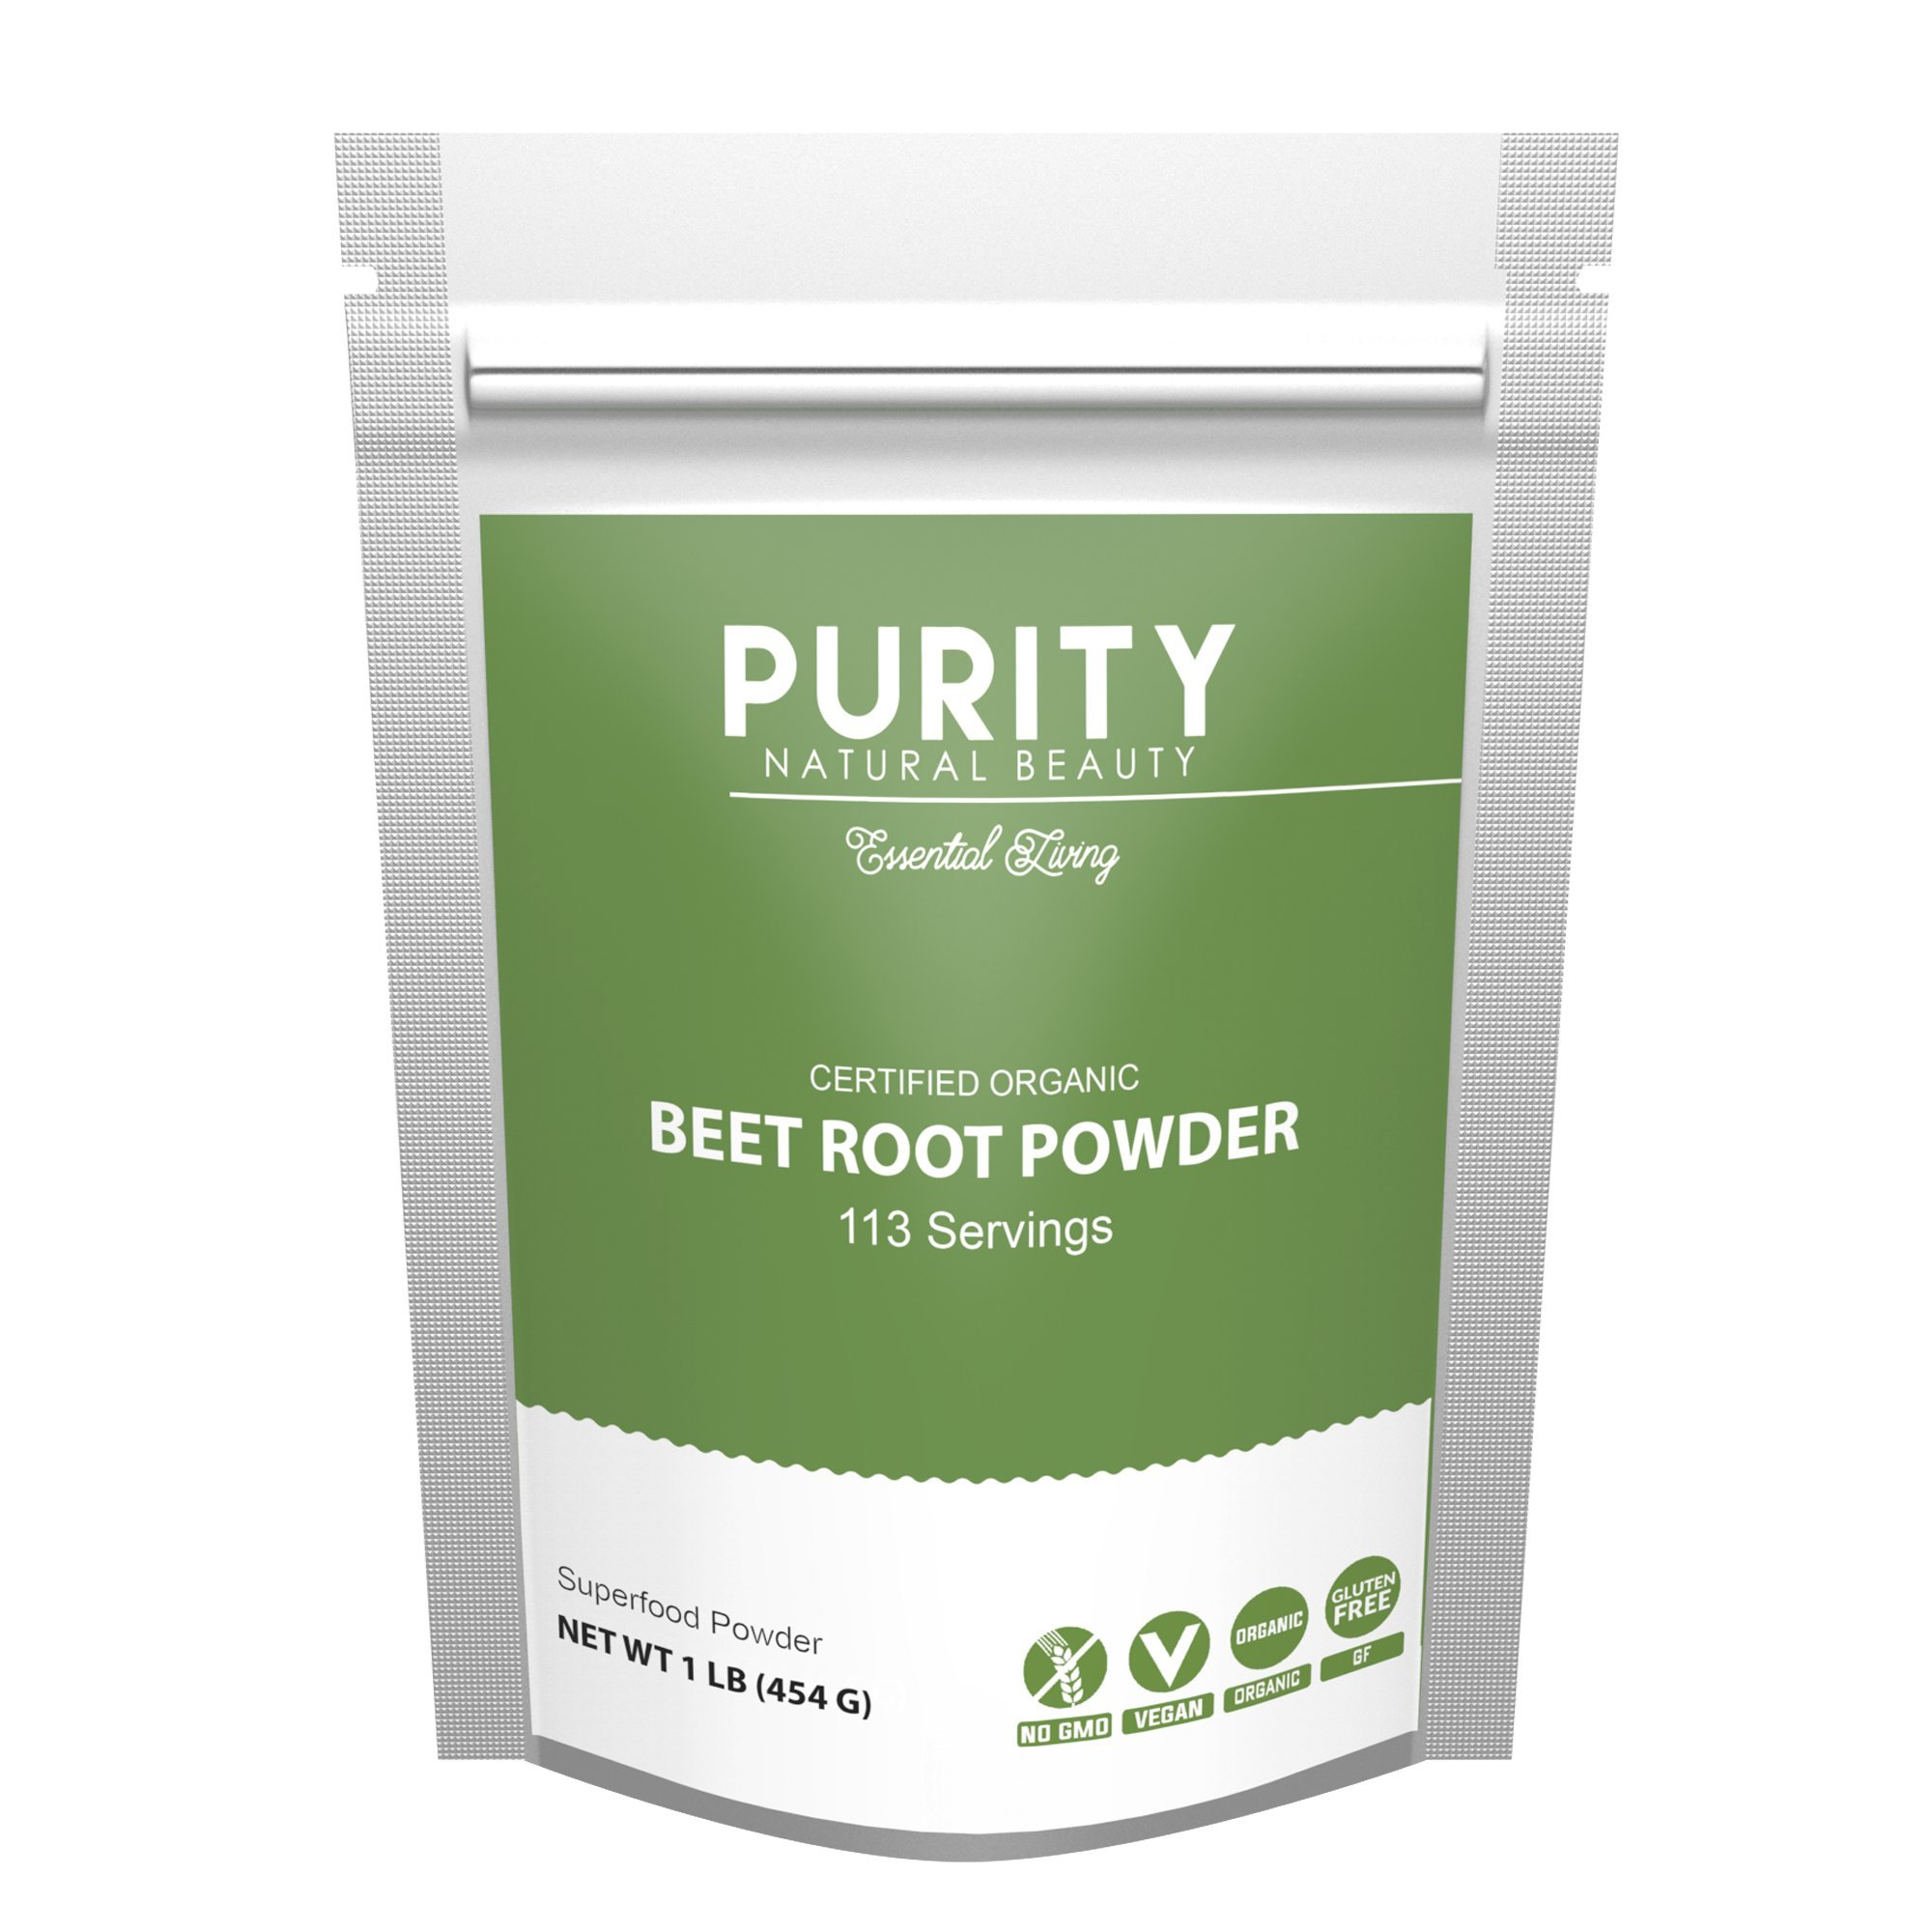 Organic Beet Root Powder - Beetroot Extract (1LB) - Beet Root Juice Supplements rich in Nitric Oxides for Energy Booster, Super Beats Flavor for Delicious Smoothie, Vegan Friendly, Water Soluble